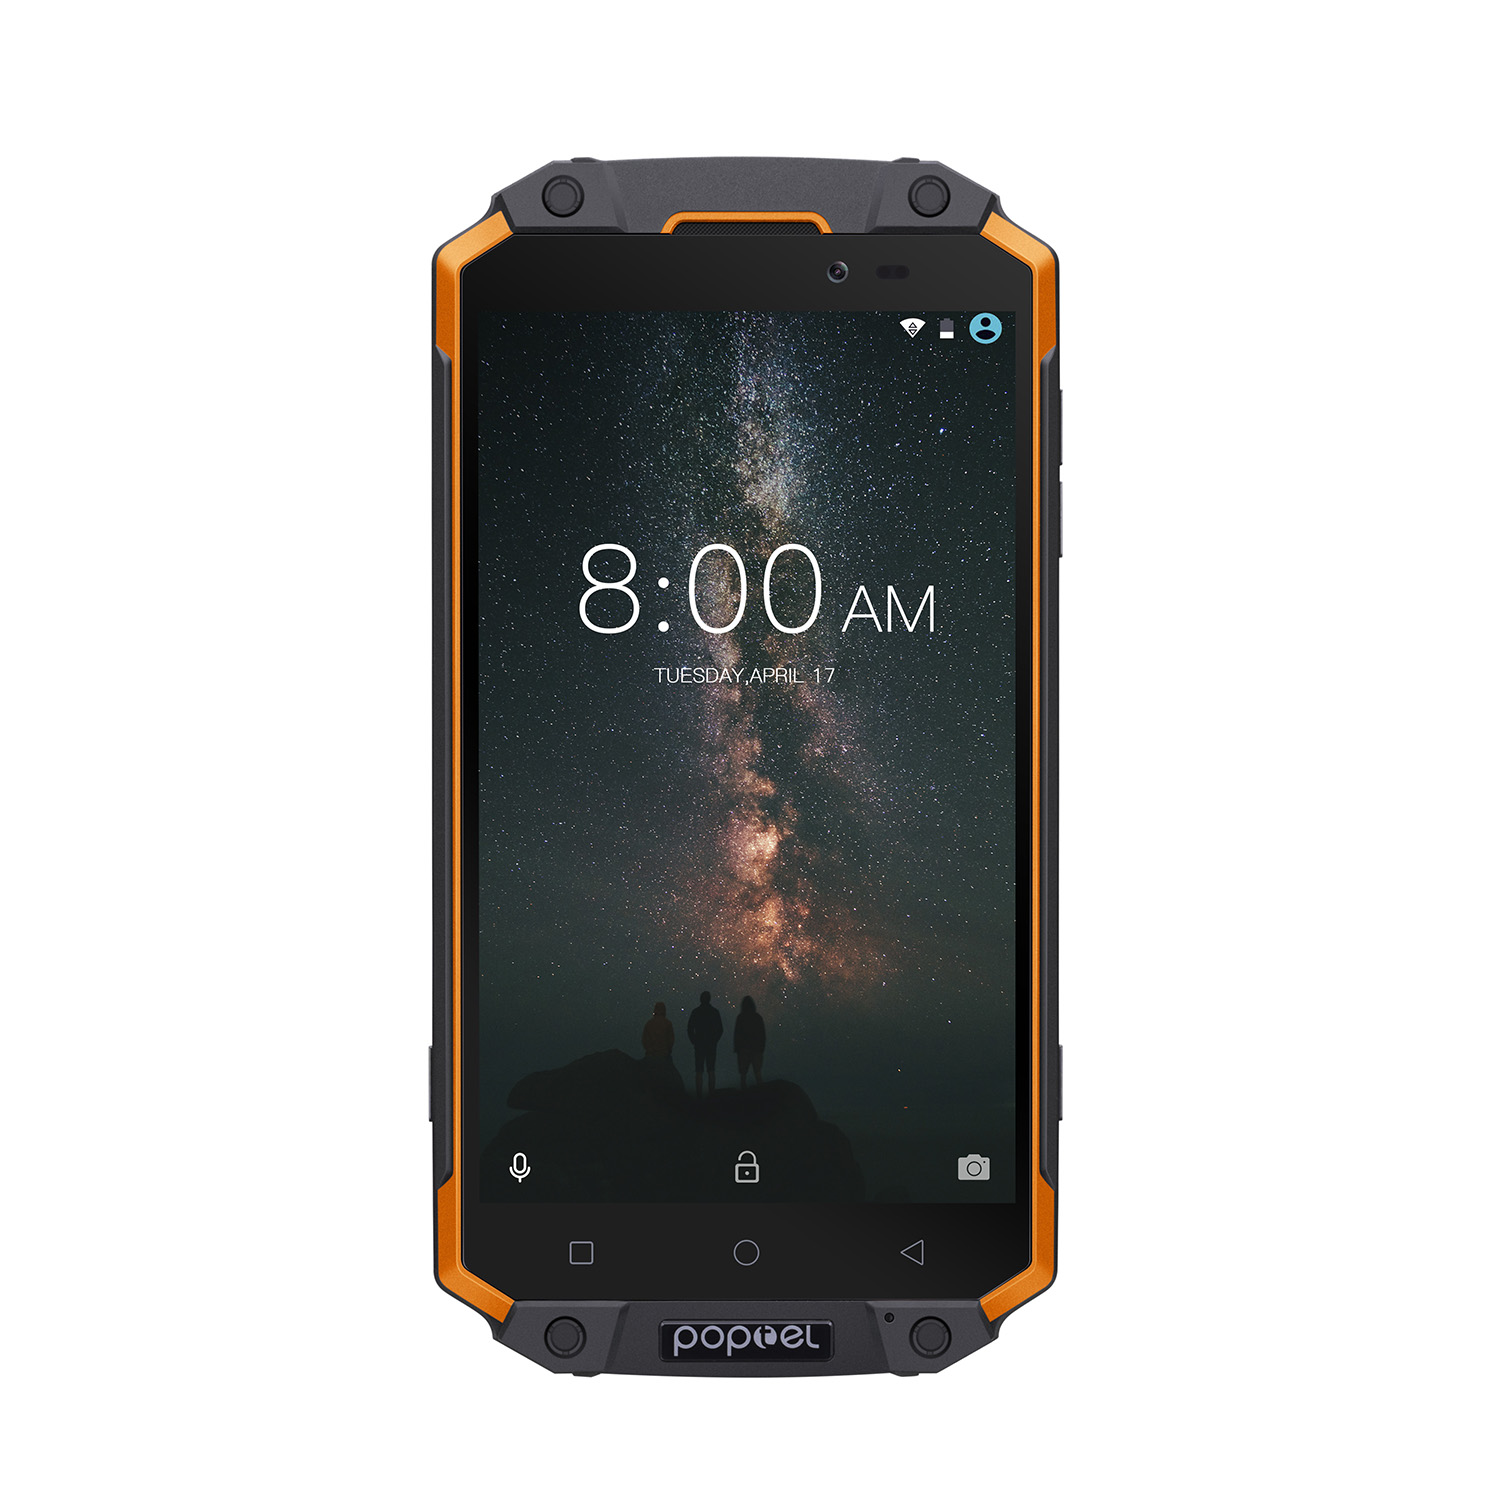 images/wholesale-electronics-2019/POPTEL-P9000-MAX-Android-Phone-Android-70-4GB-RAM-55-Inch-FHD-IP68-Dual-IMEI-plusbuyer.jpg